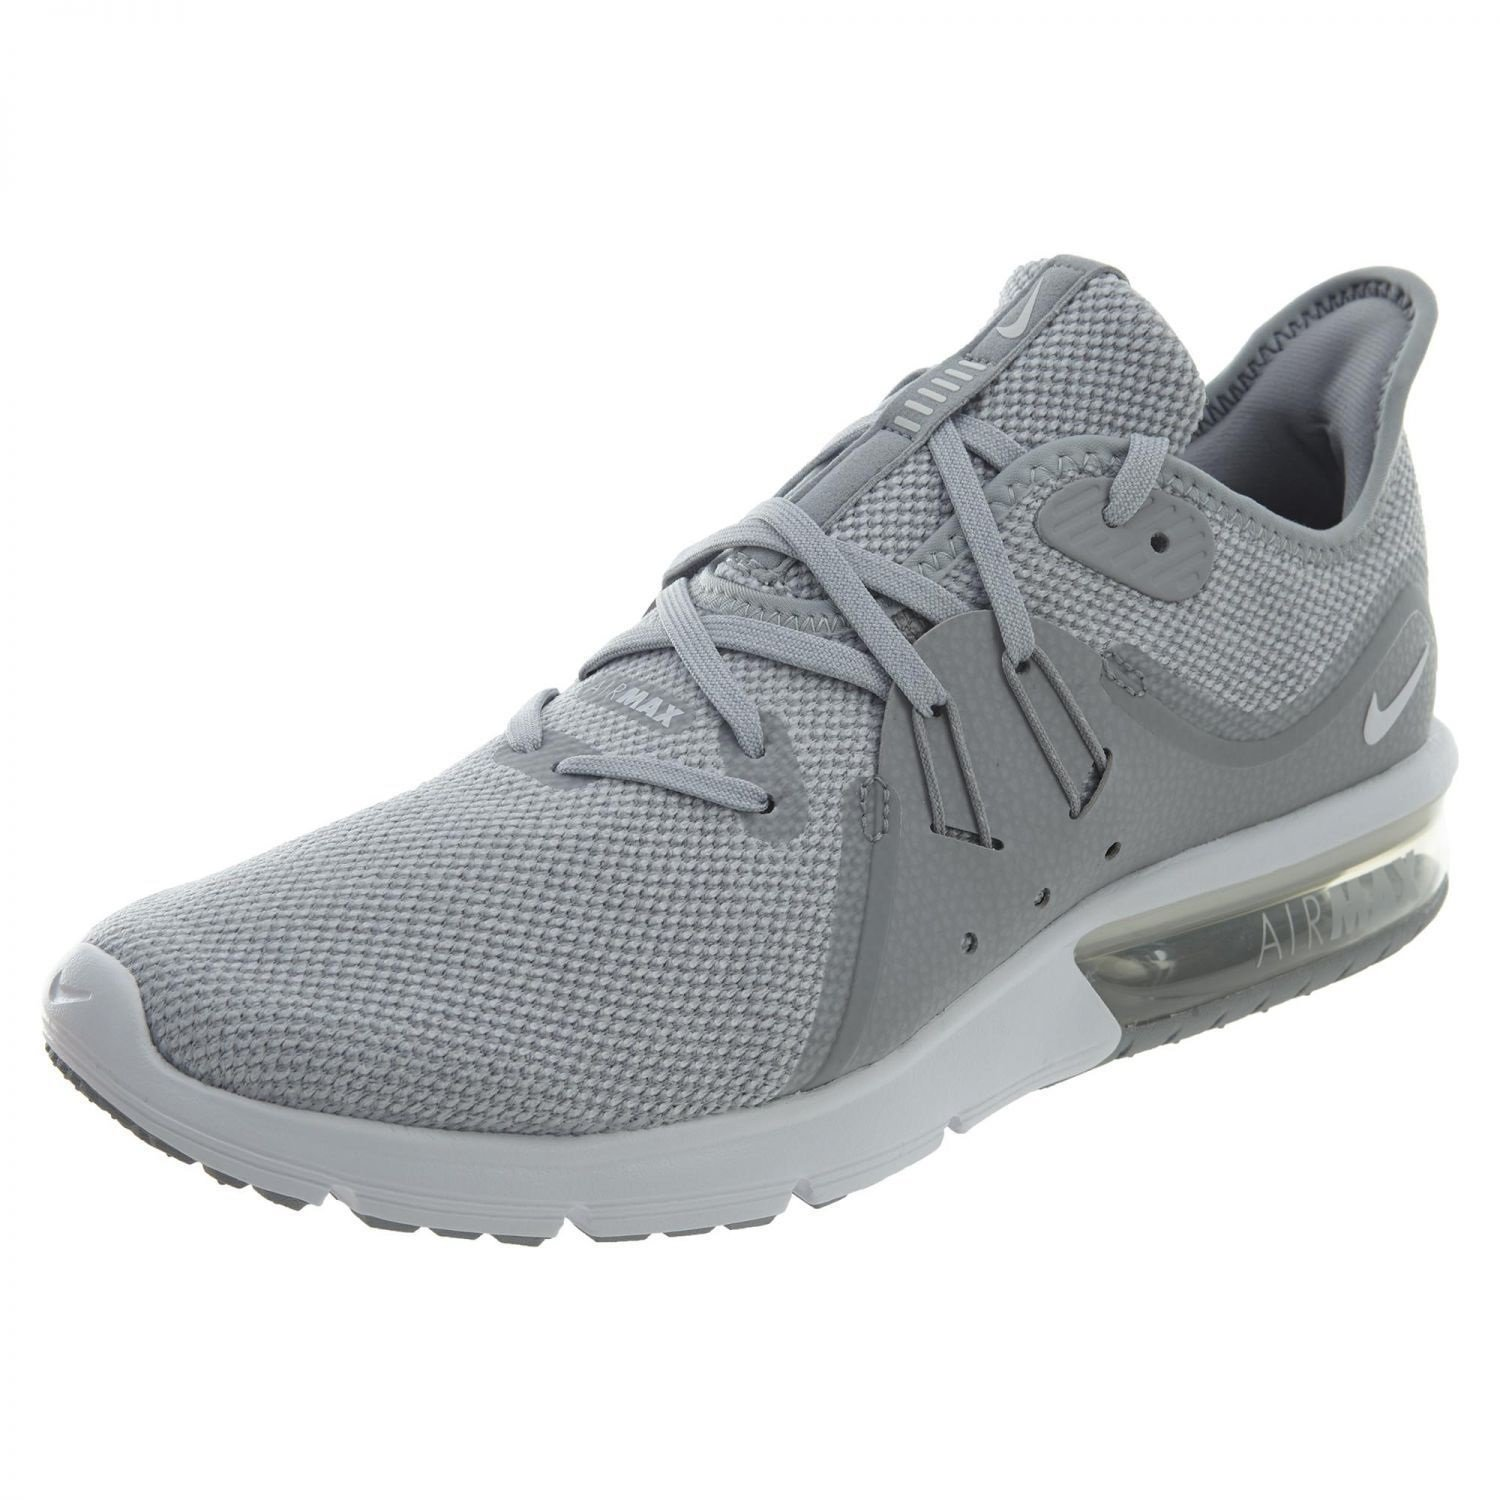 14a0113e587 Galleon - Nike Men s Air Max Sequent 3 Running Shoes Wolf Grey White-Pure  Platinum 7